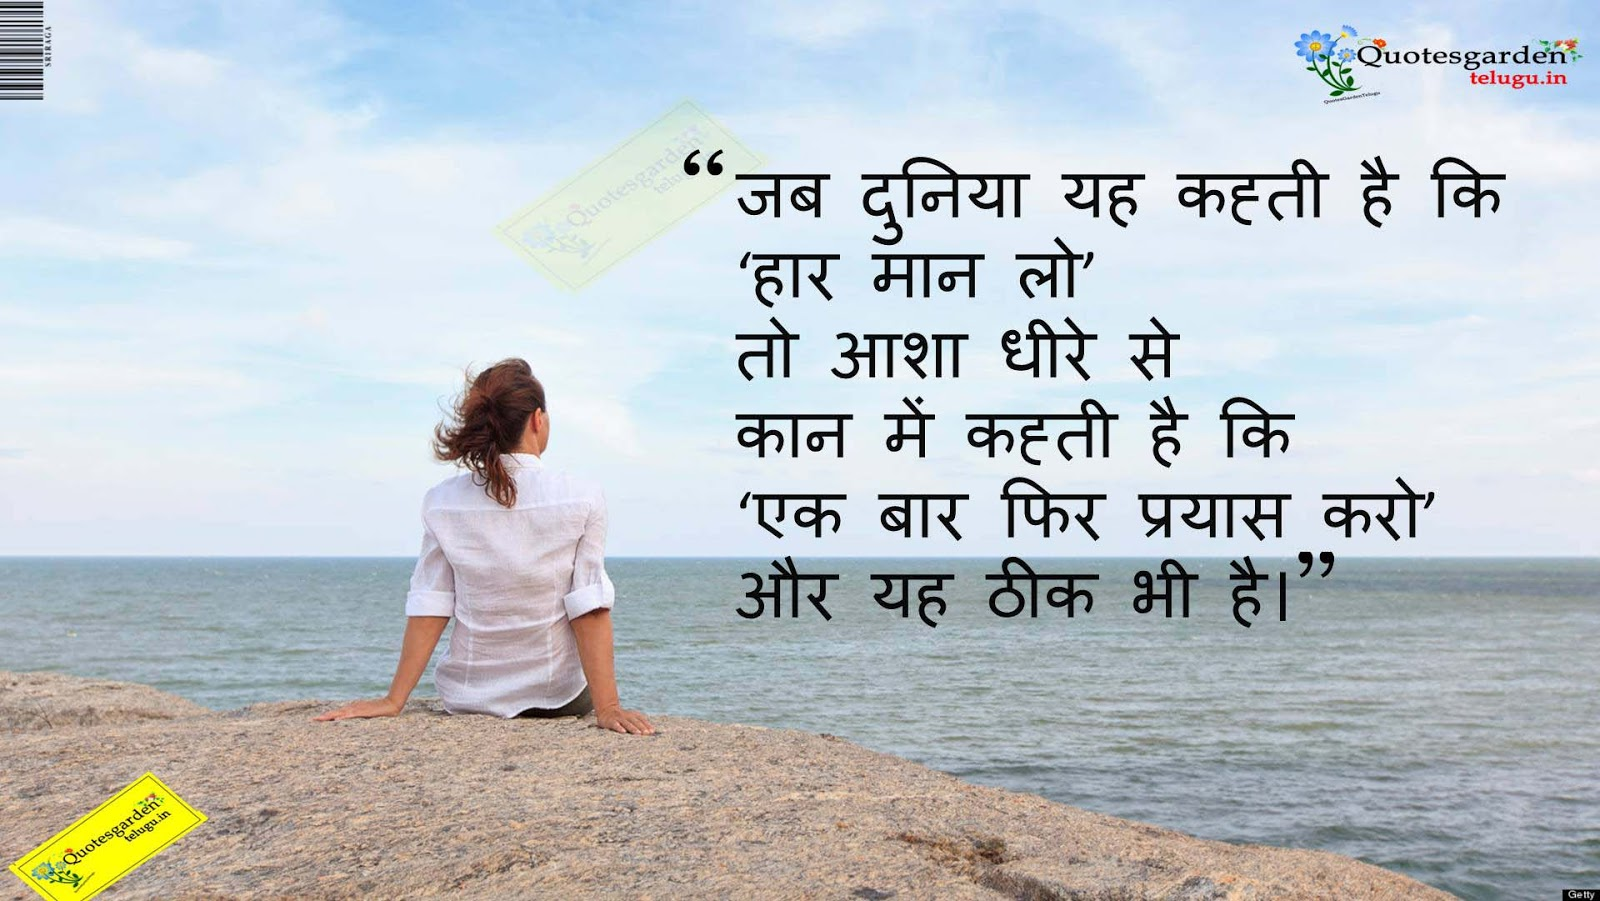 Best Hindi Inspirational Quotes Anmol Vachan Suvichar 734 Quotes